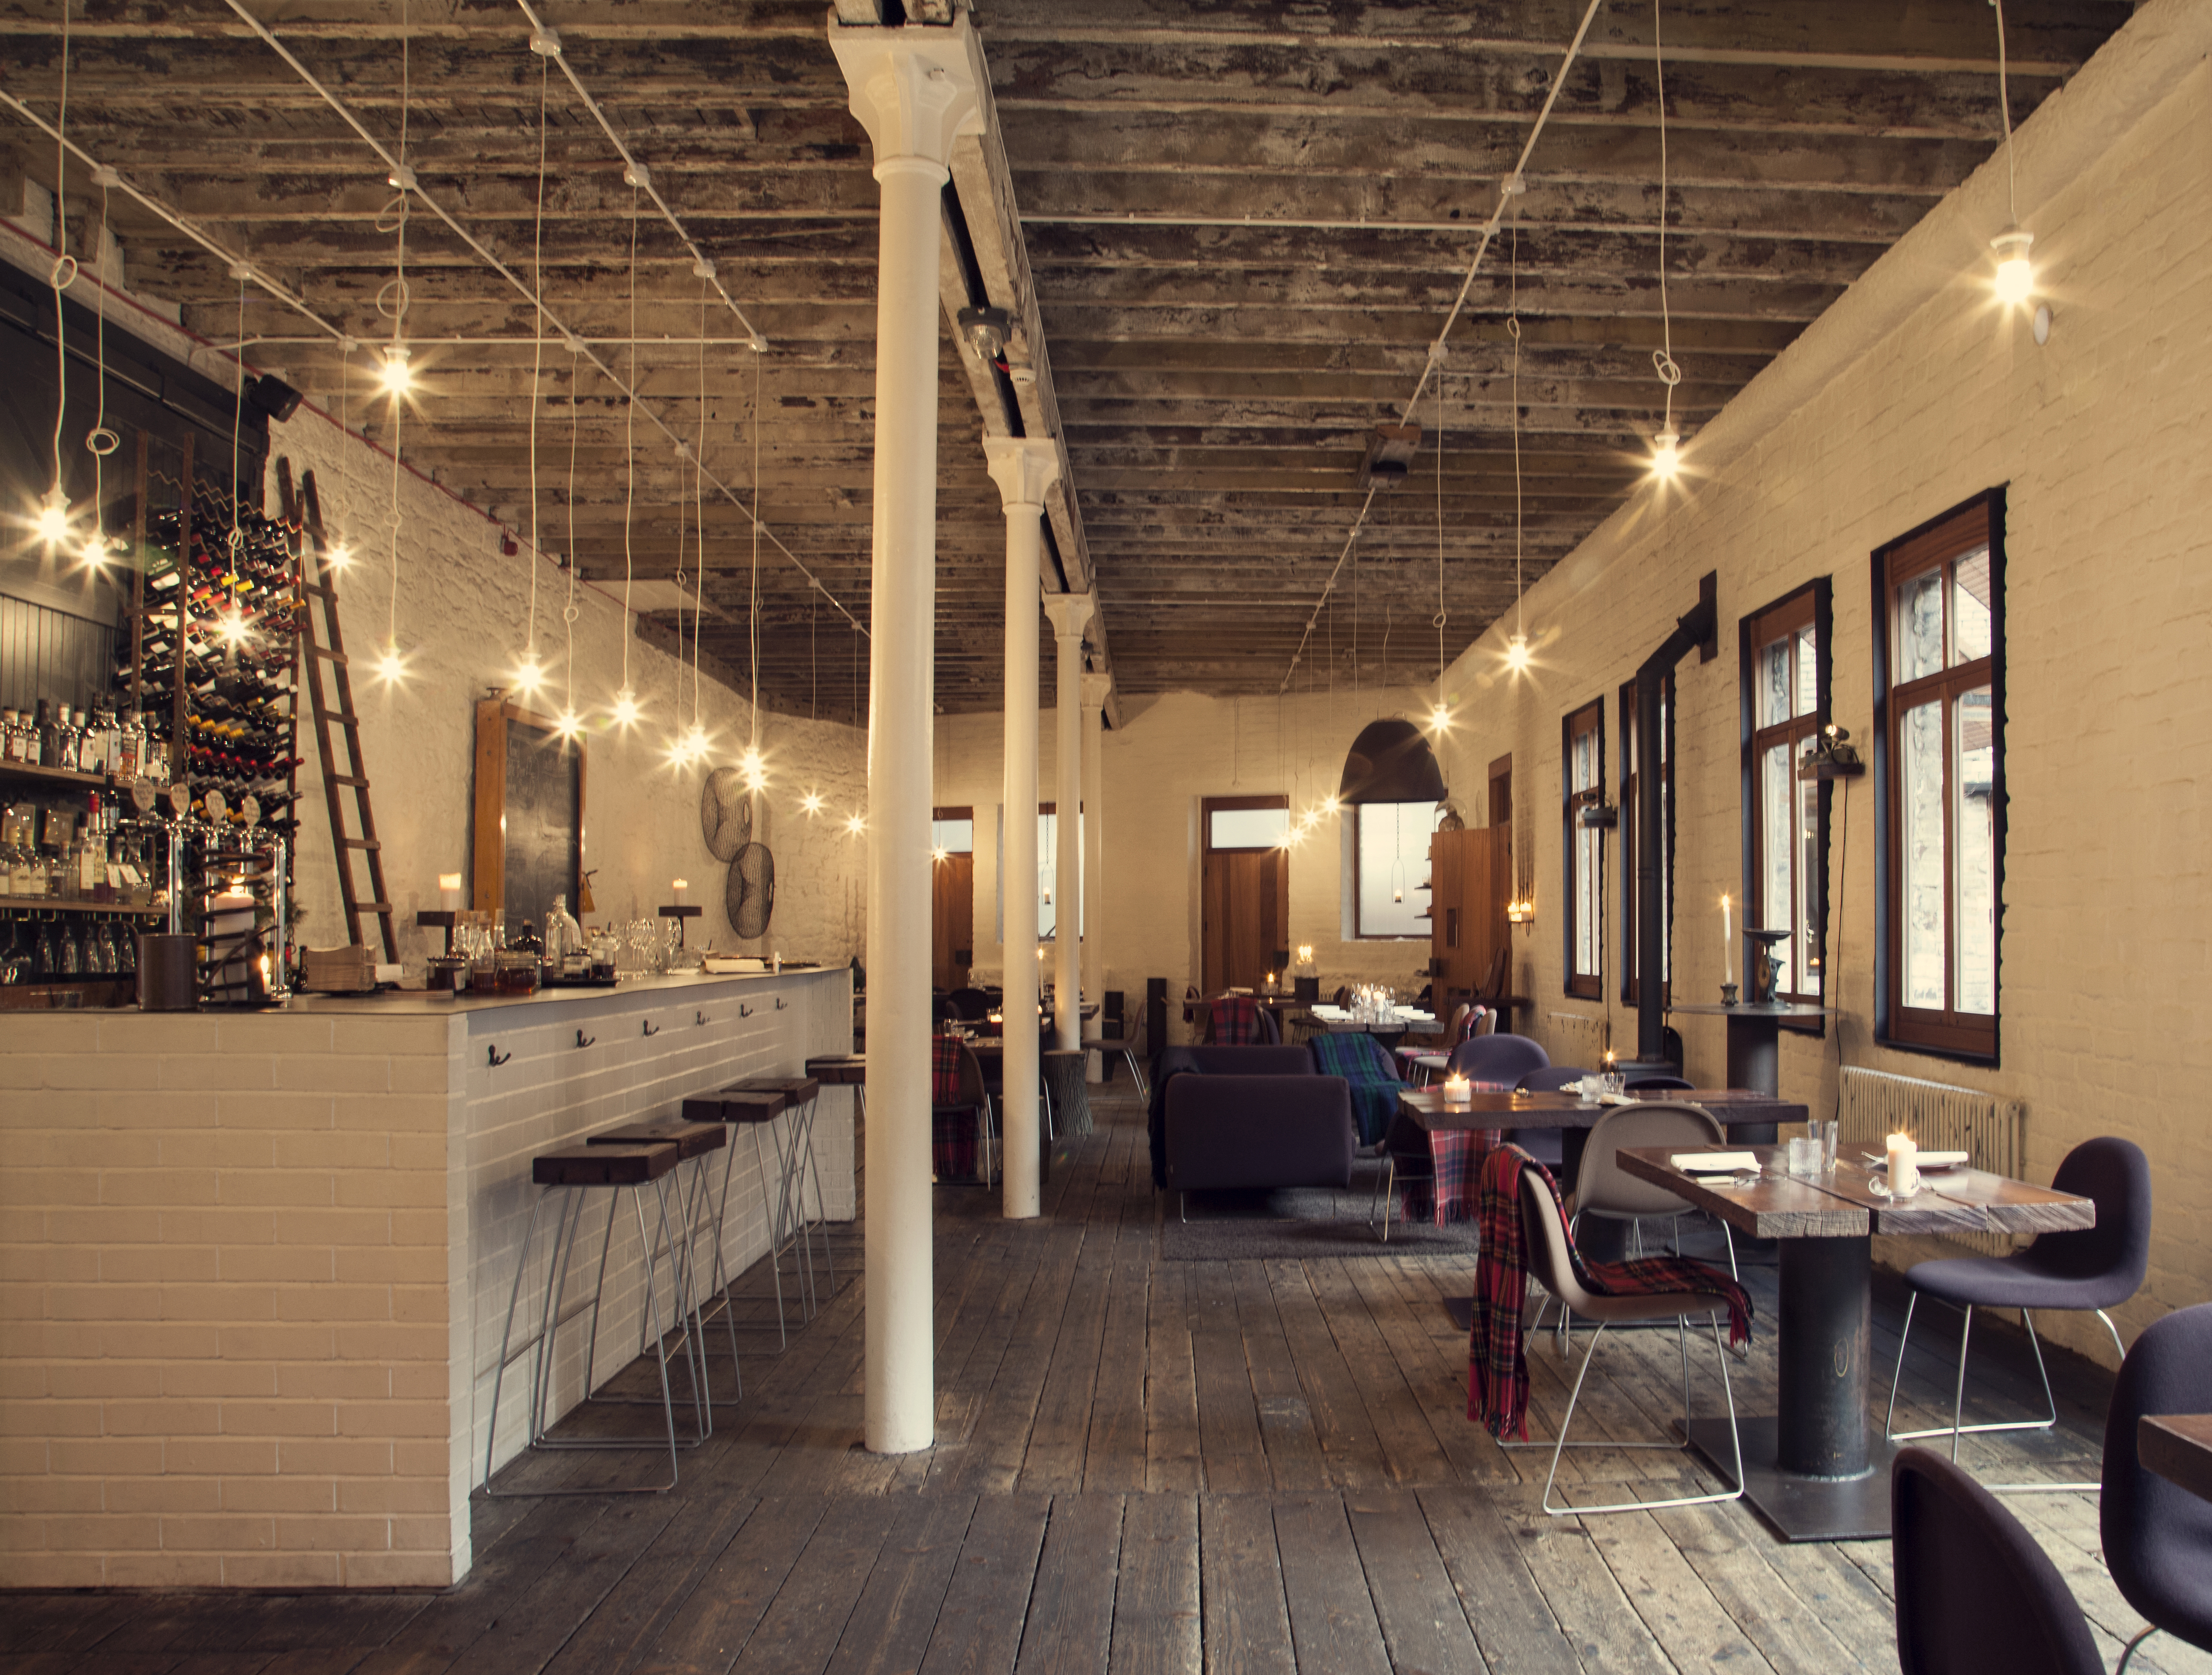 EAT: TIMBERYARD